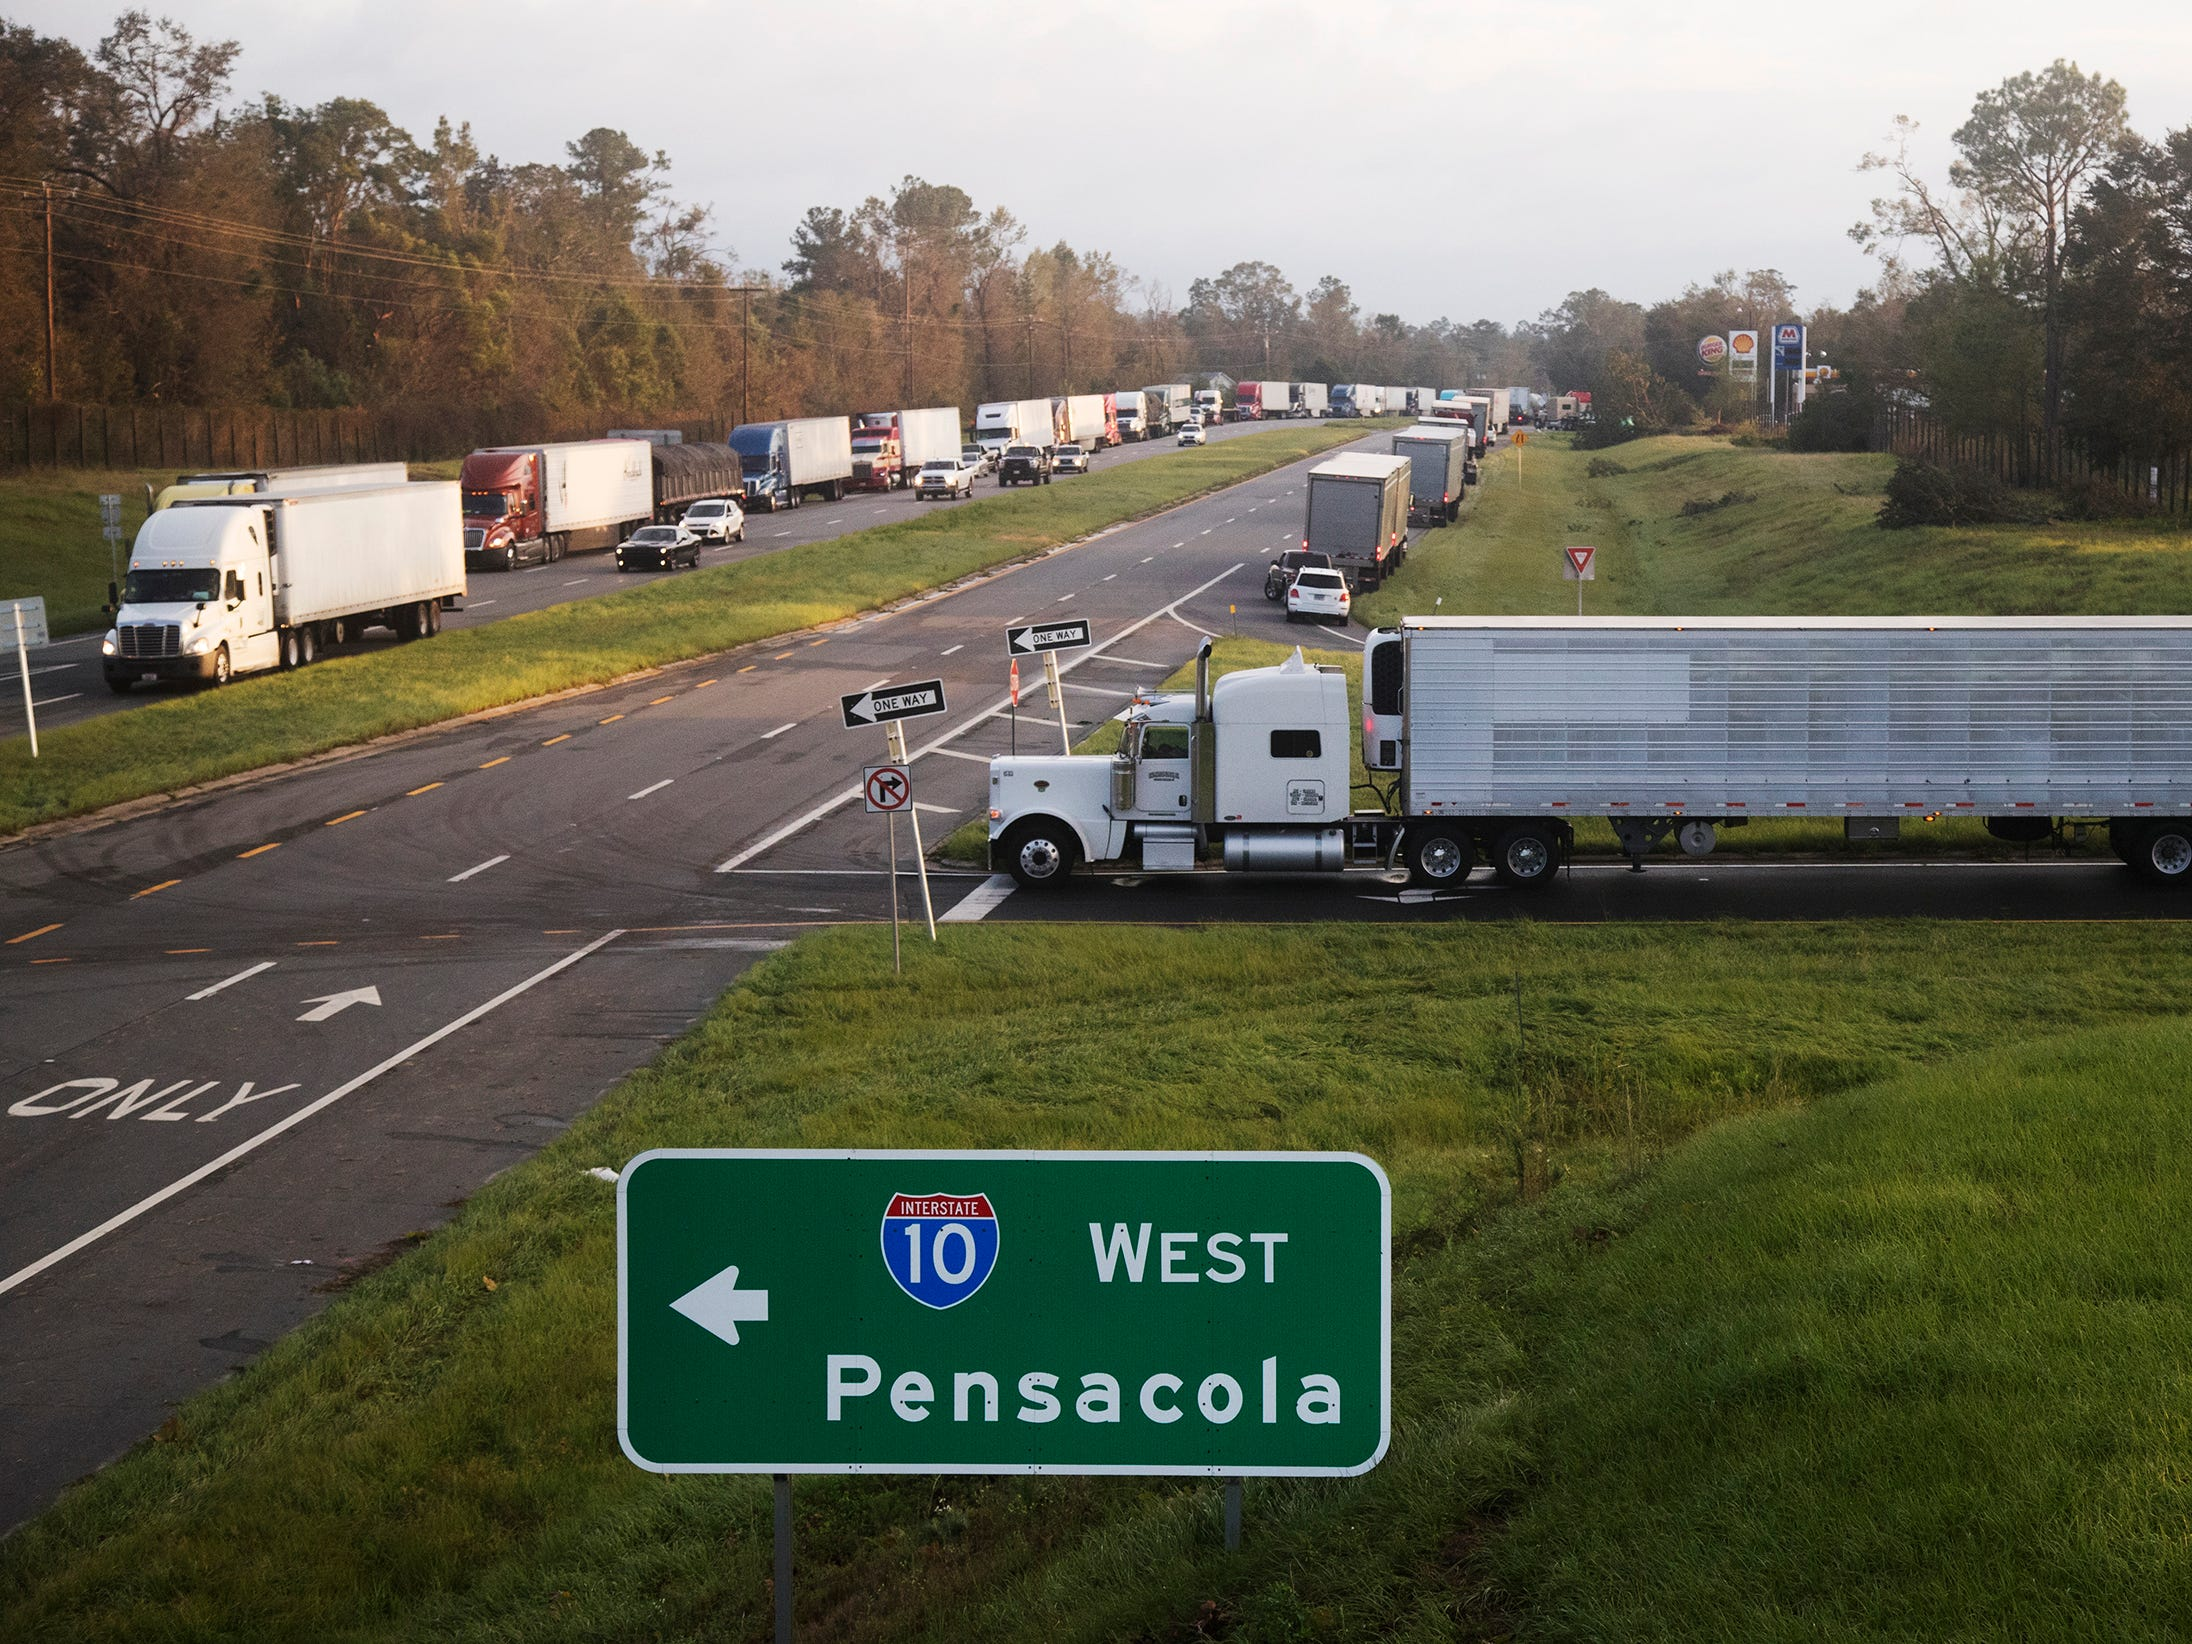 Traffic is denied access to Interstate 10 West at exit 147 in Gadsden County, Florida on Thursday. Downed trees and power lines from Hurricane Michael are preventing non-essential travel to Panama City using 10 West. Portions of 10 West are closed for 80 miles.